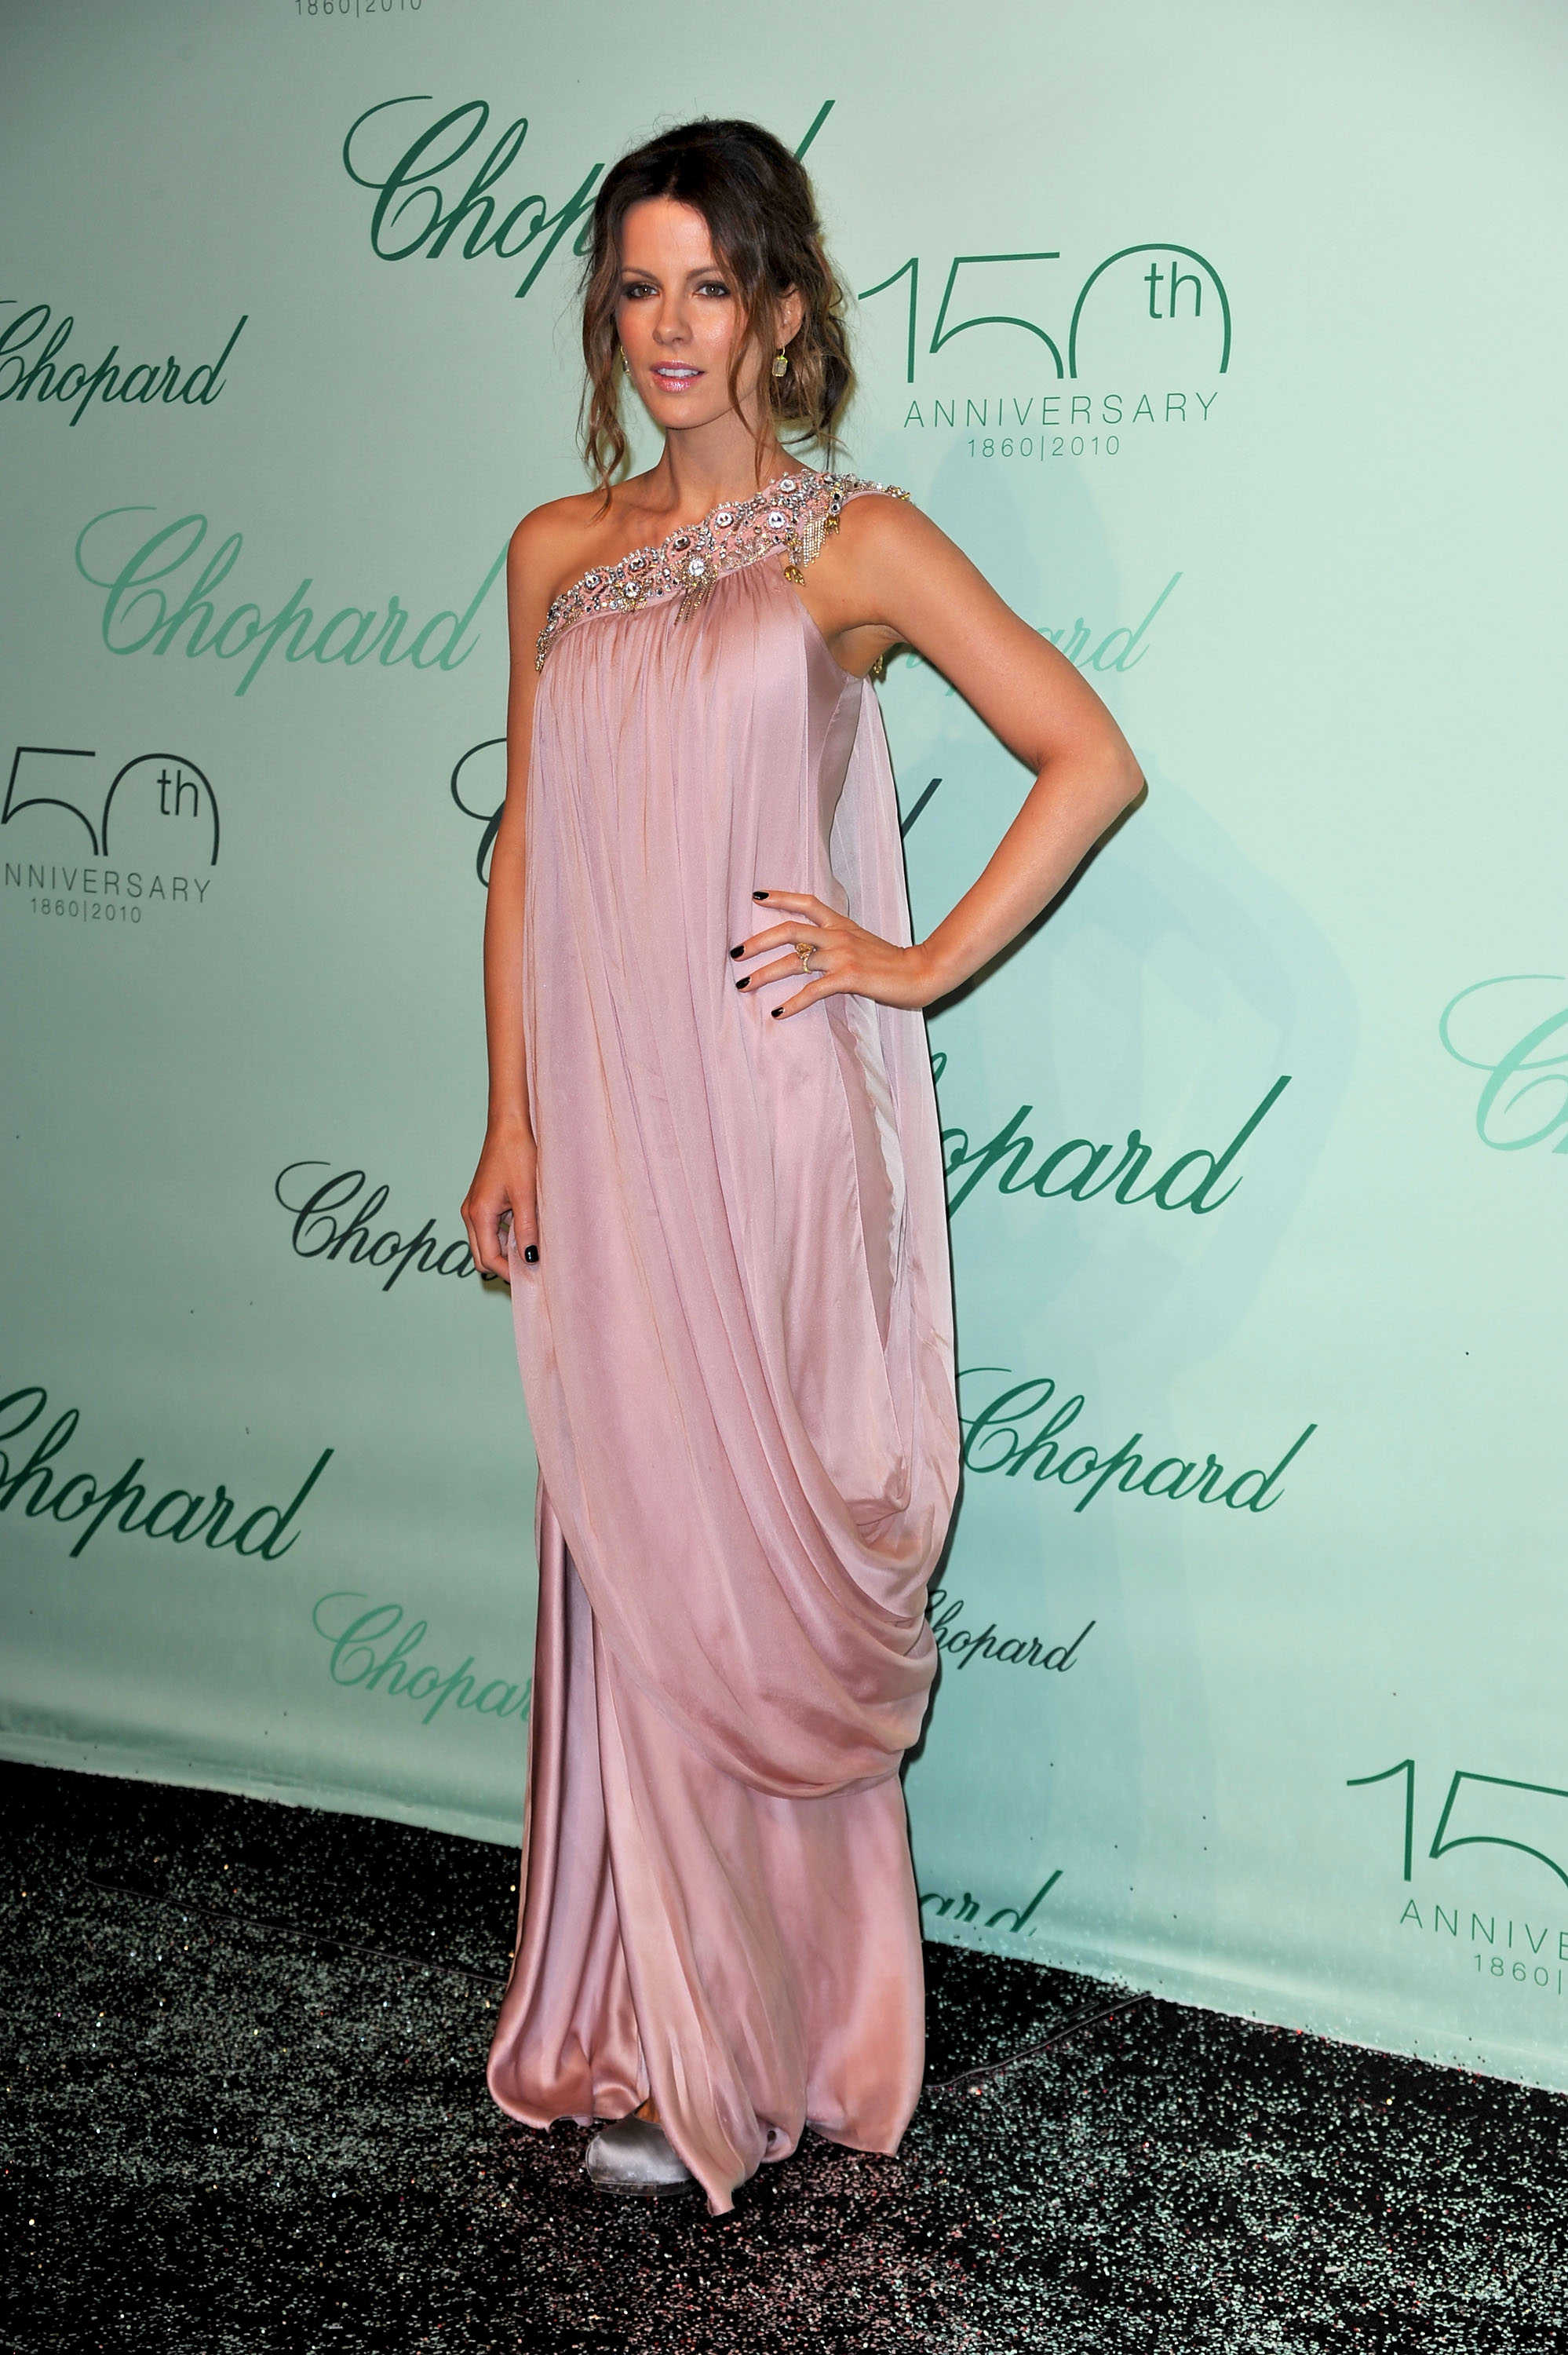 Kate Beckinsale 2010 : kate-beckinsale-at-chopard-150th-anniversary-party-in-cannes-2010-hq-12